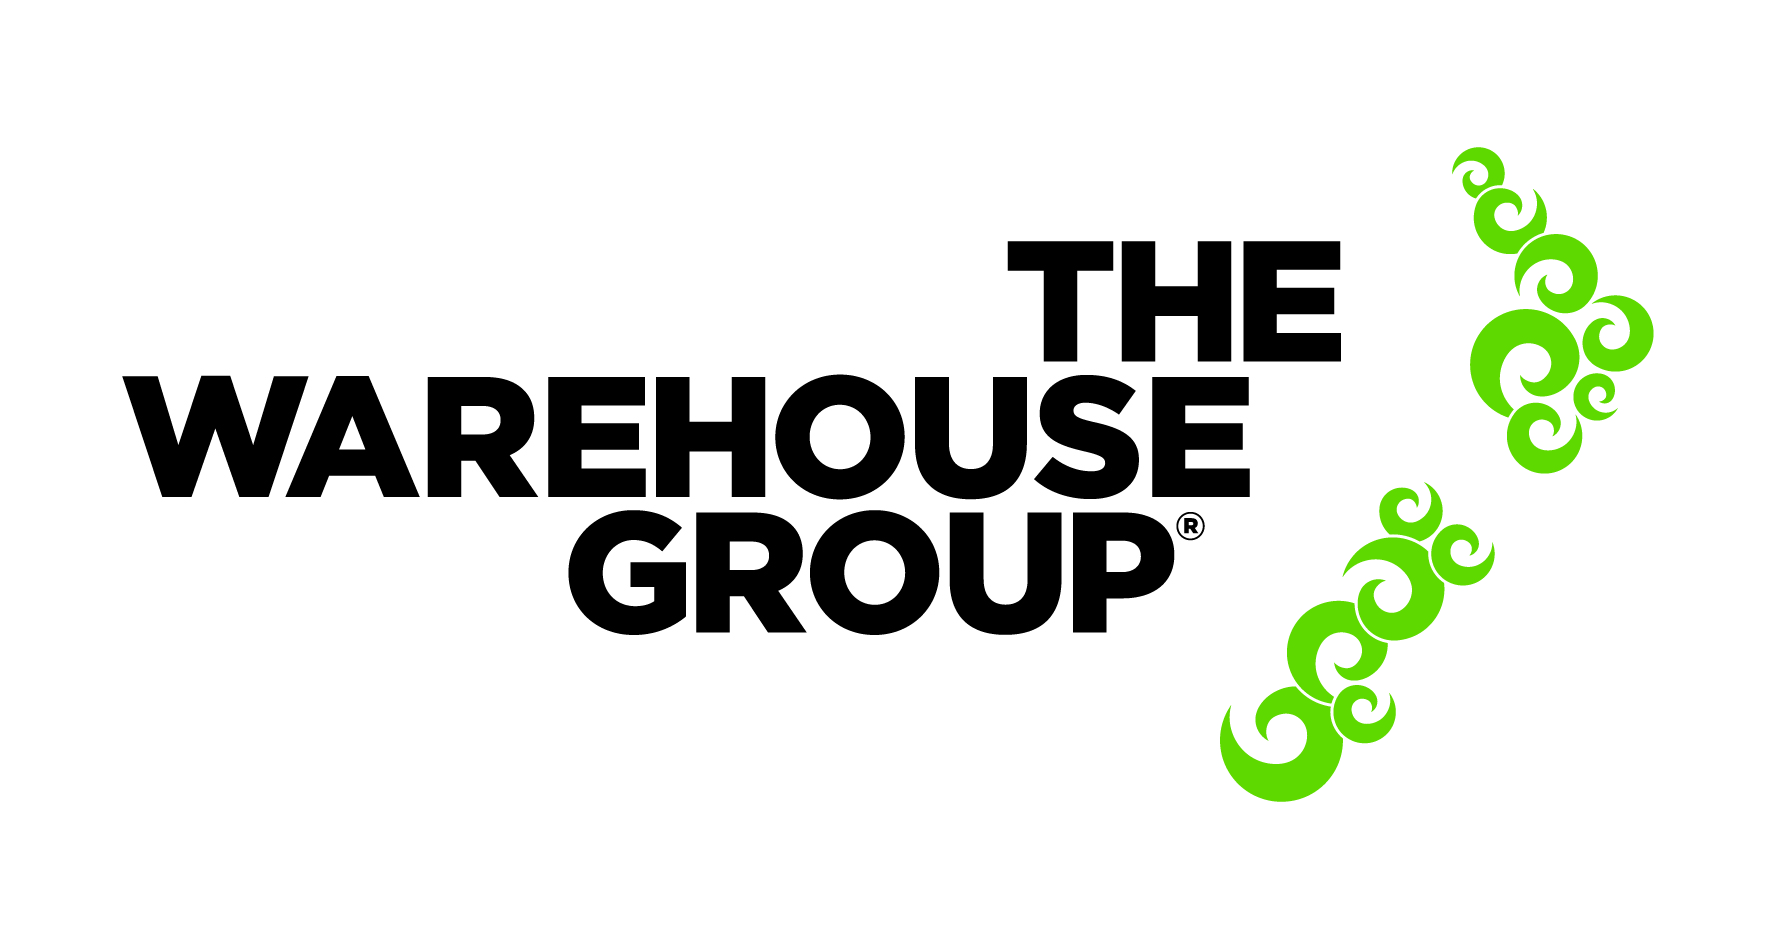 Logo Warehouse Group Png - The Warehouse Group Limited, Transparent background PNG HD thumbnail